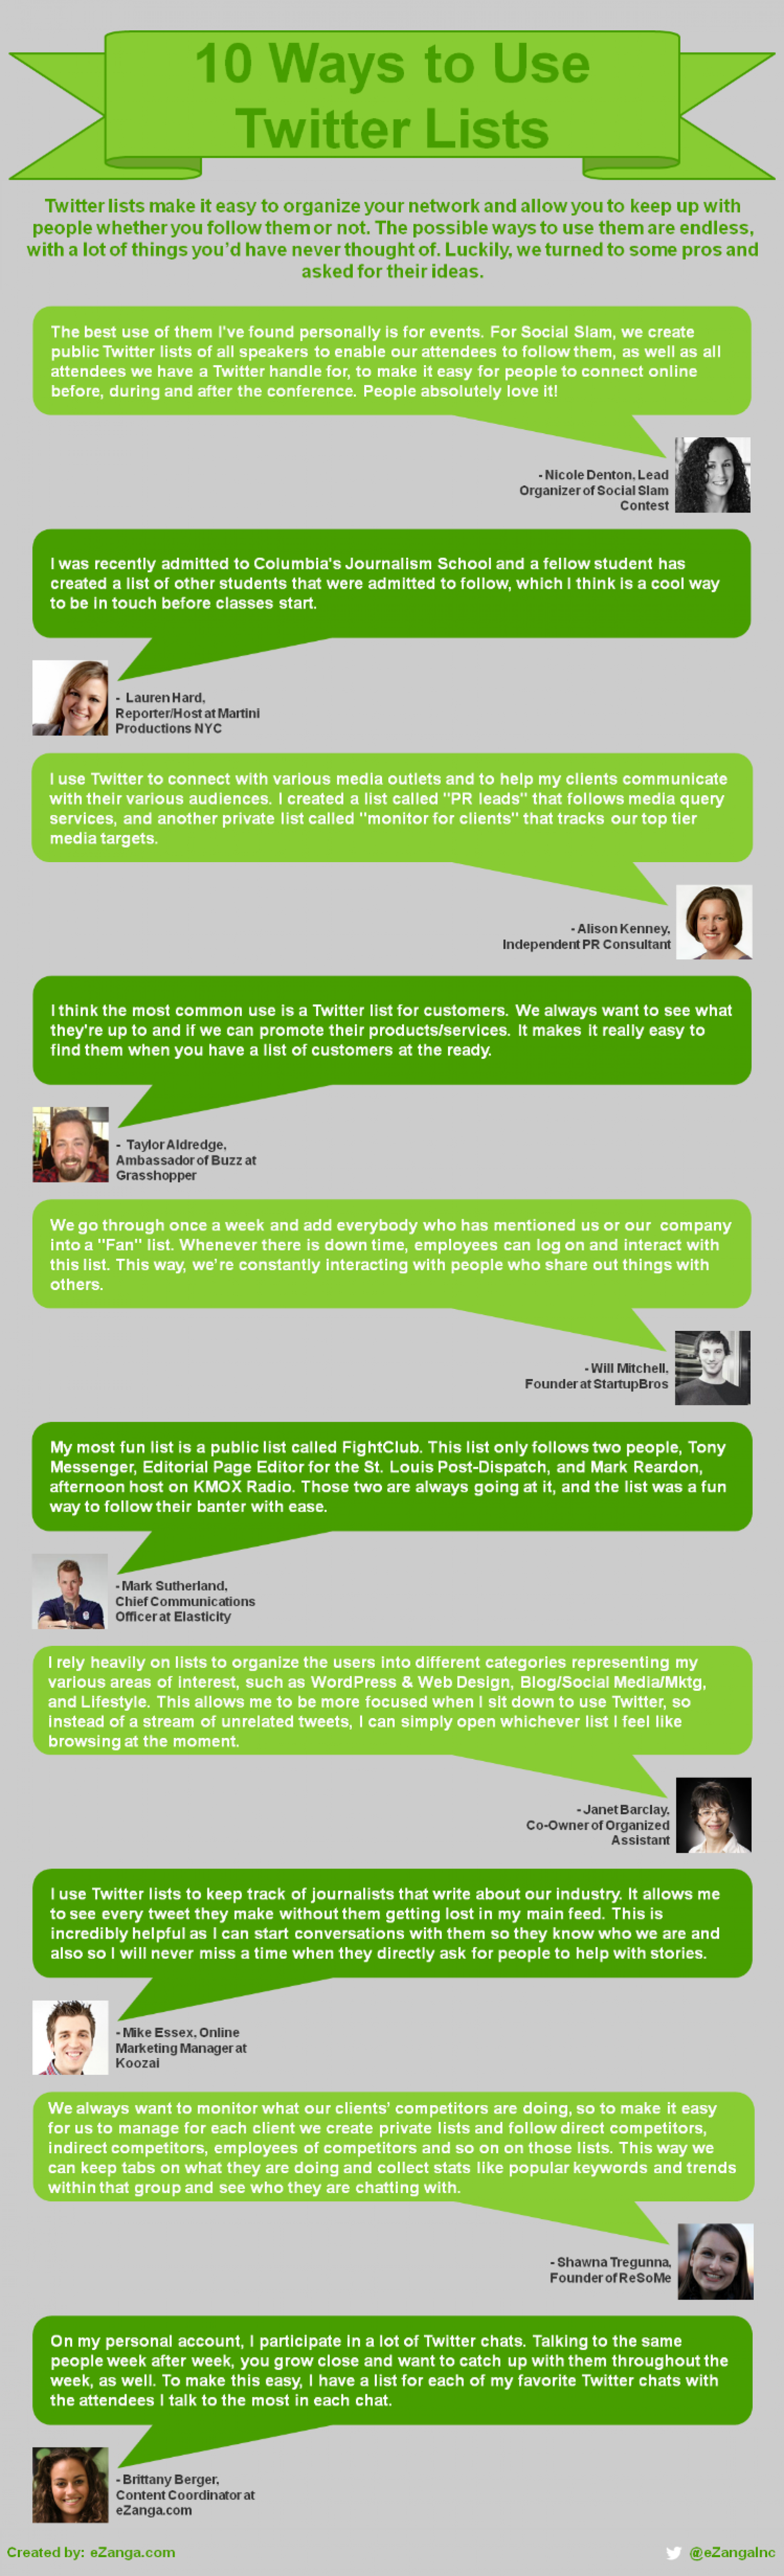 10 Ways to Use Twitter Lists Infographic